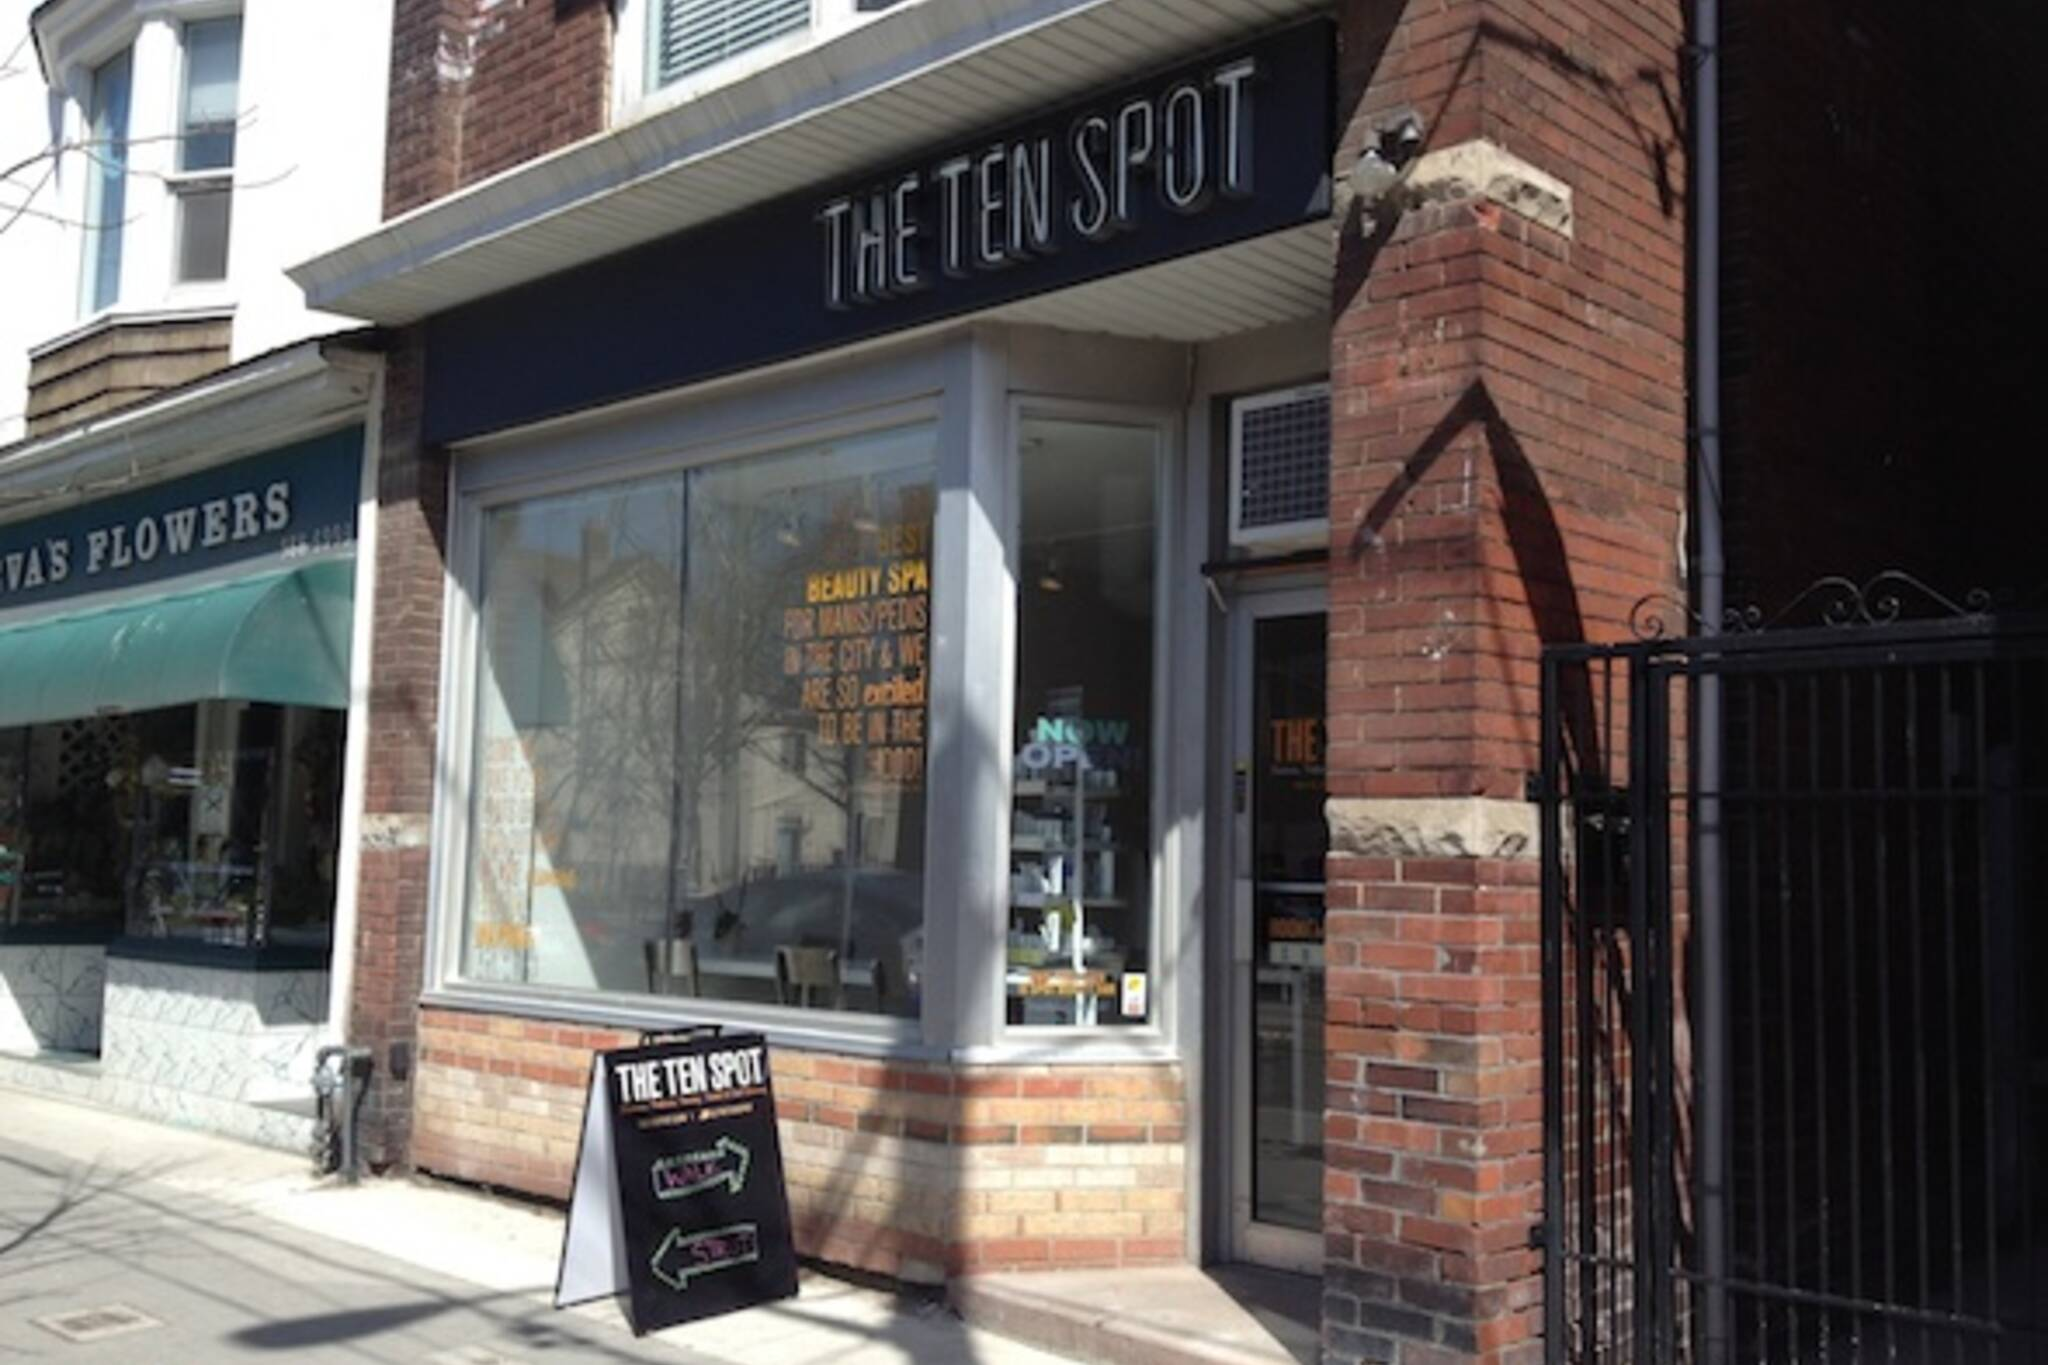 Ten Spot roncesvalles